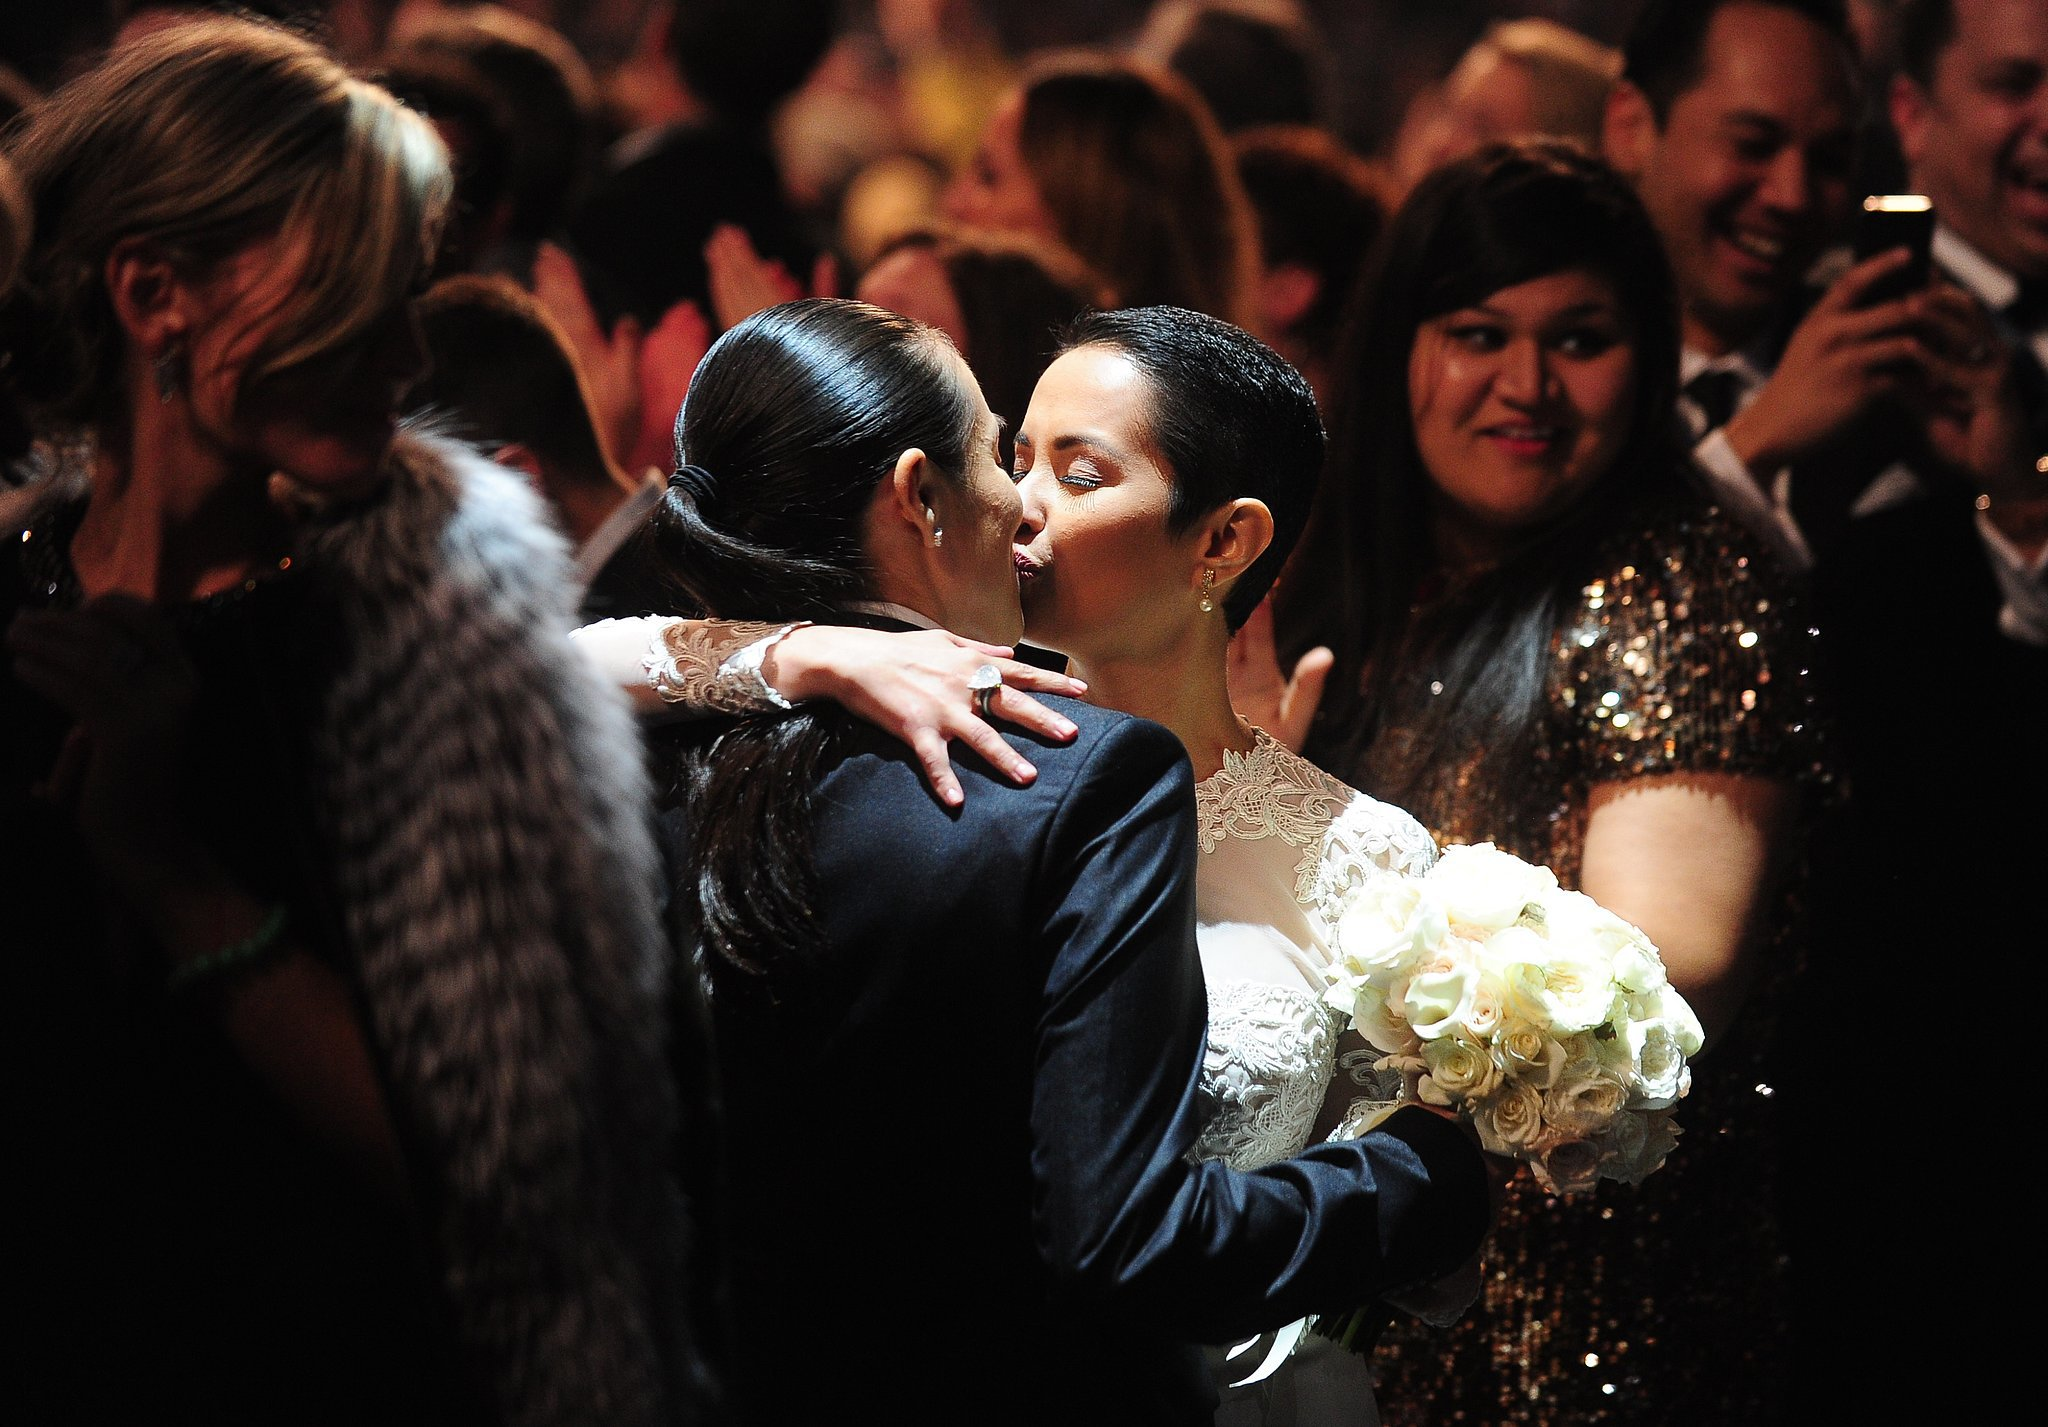 """More than 30 couples wed at the Grammy Awards during Macklemore & Ryan Lewis's performance of """"Same Love."""""""